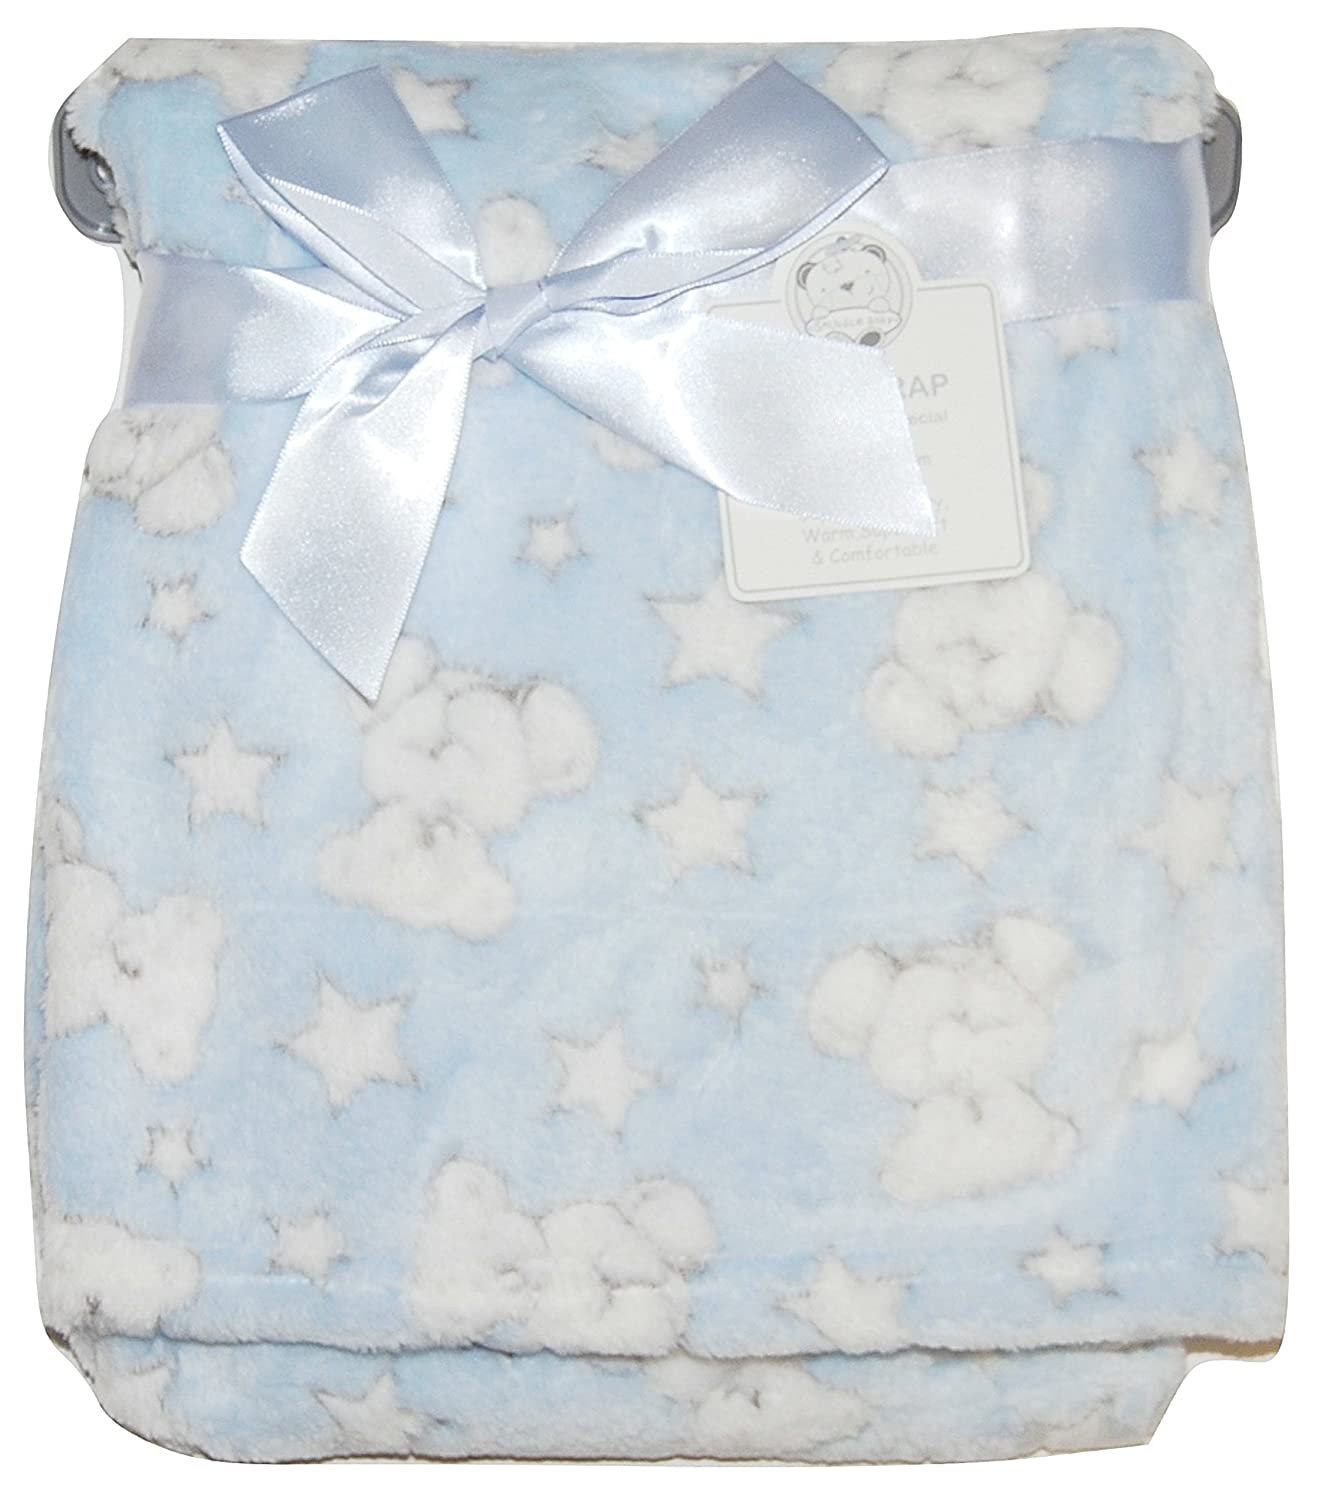 Baby Boy Girl Unisex Soft Fleece Wrap Blanket Pram Cot Crib Moses Basket Grey Star Teddy Snuggle Baby